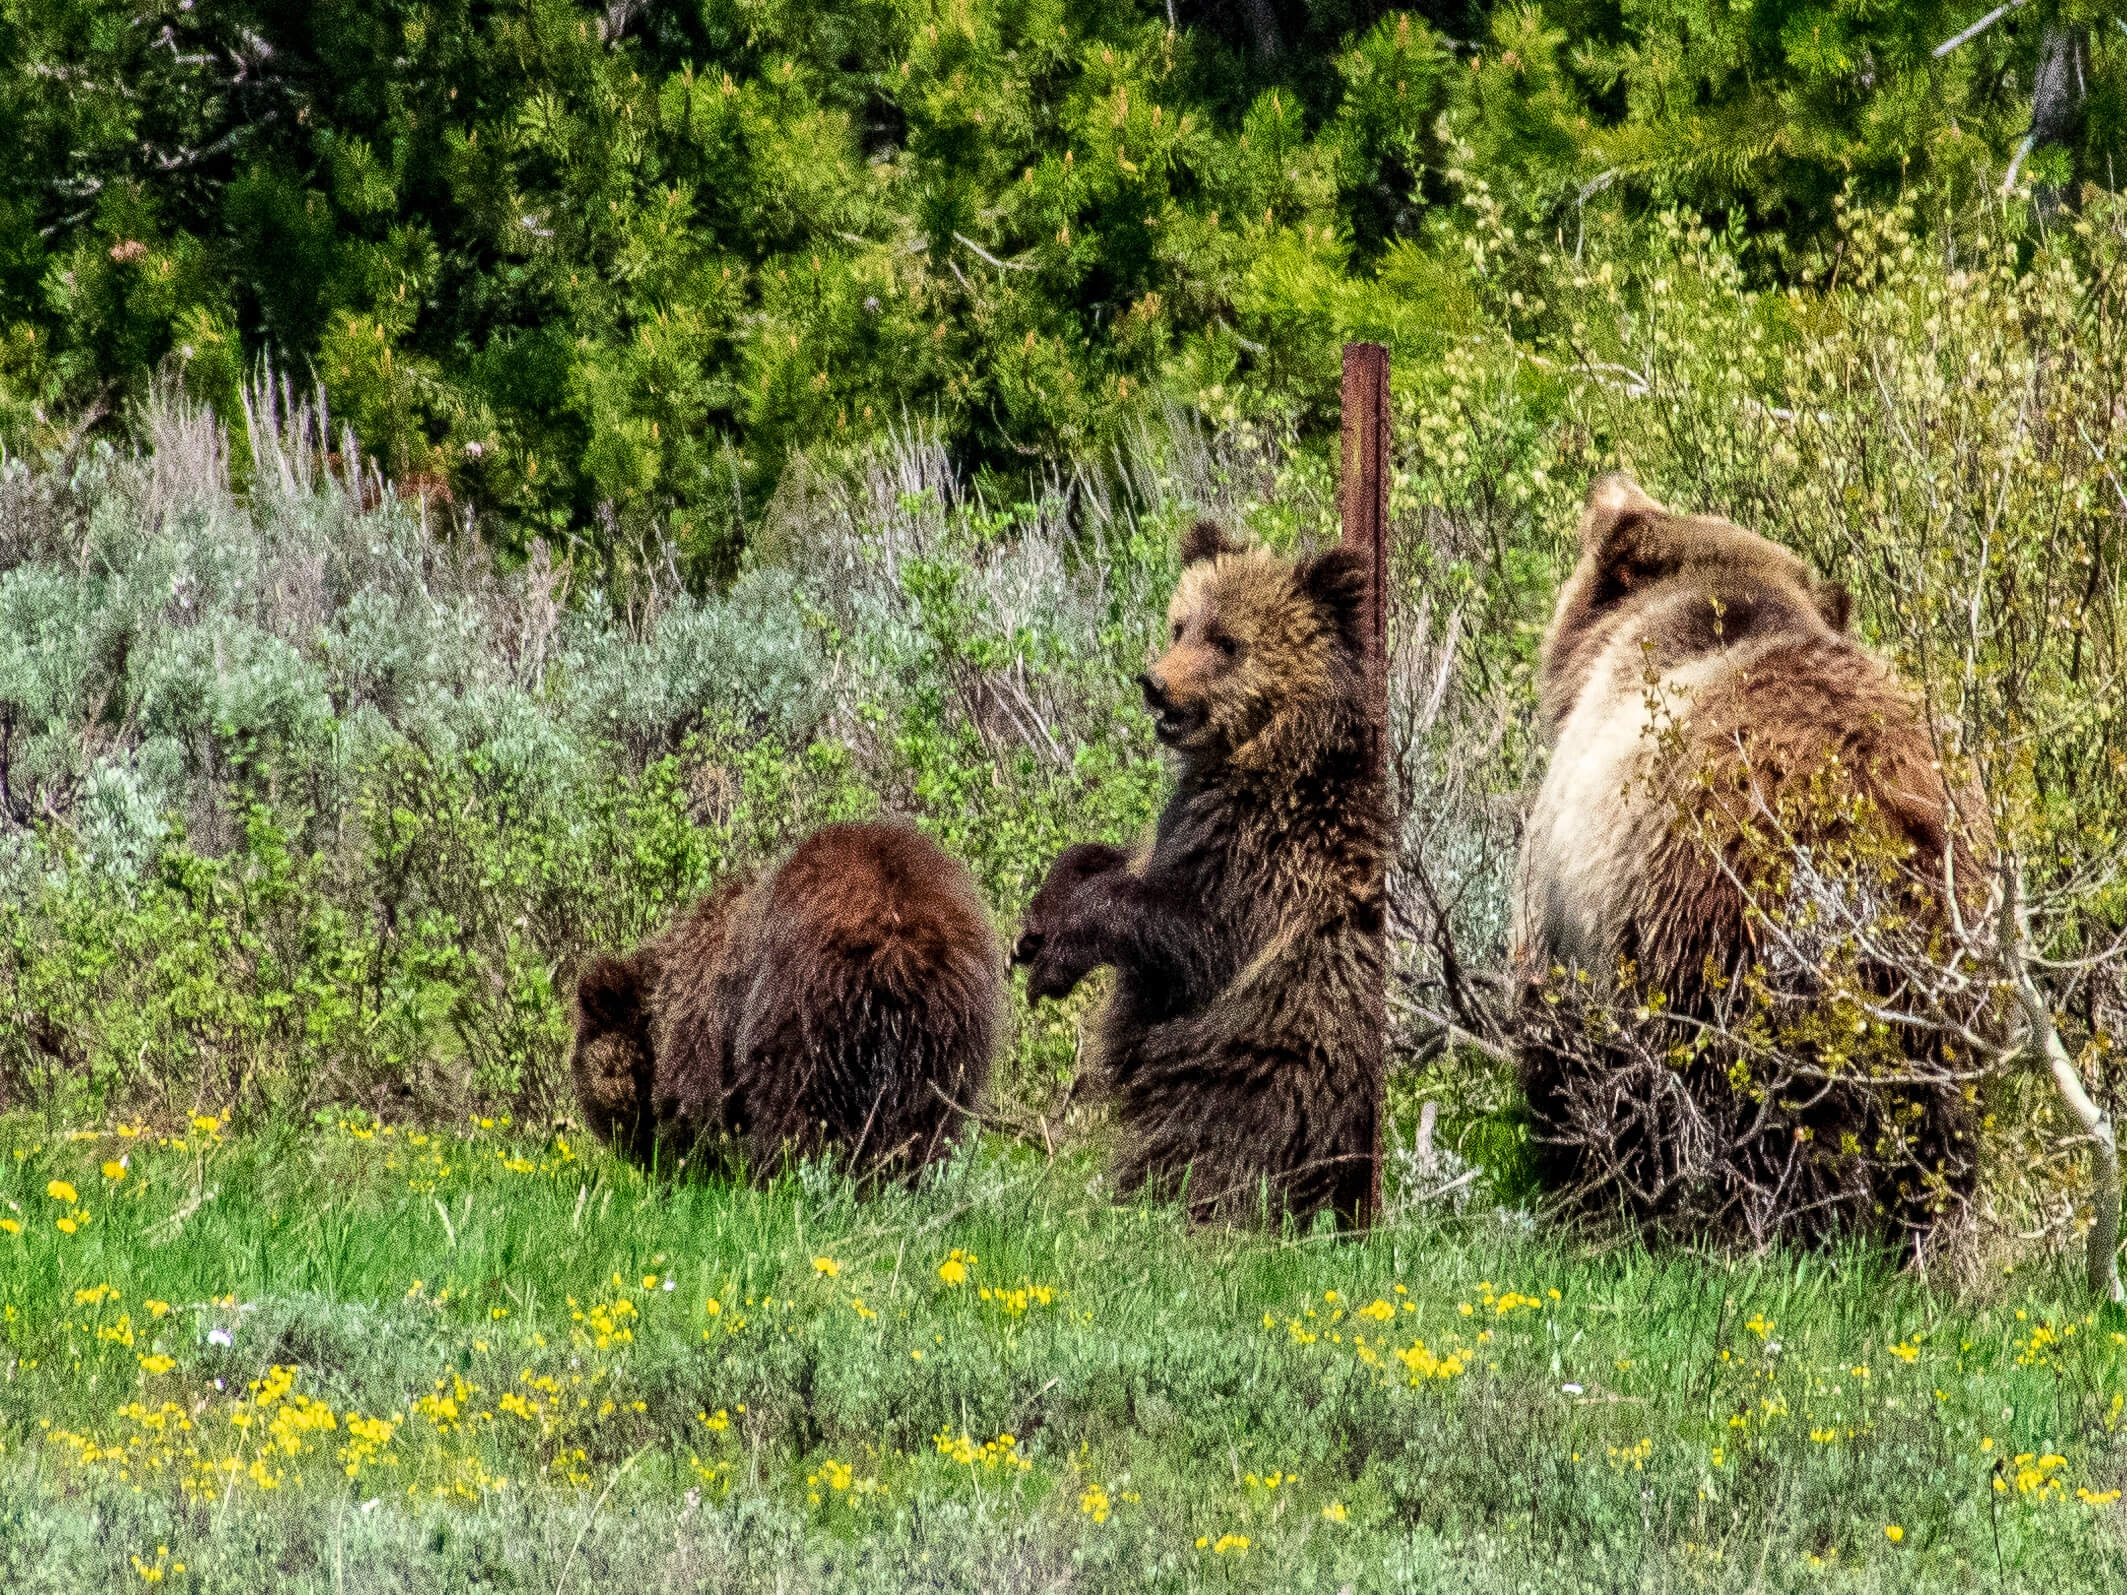 Grizzly cub scratching back Grand Teton